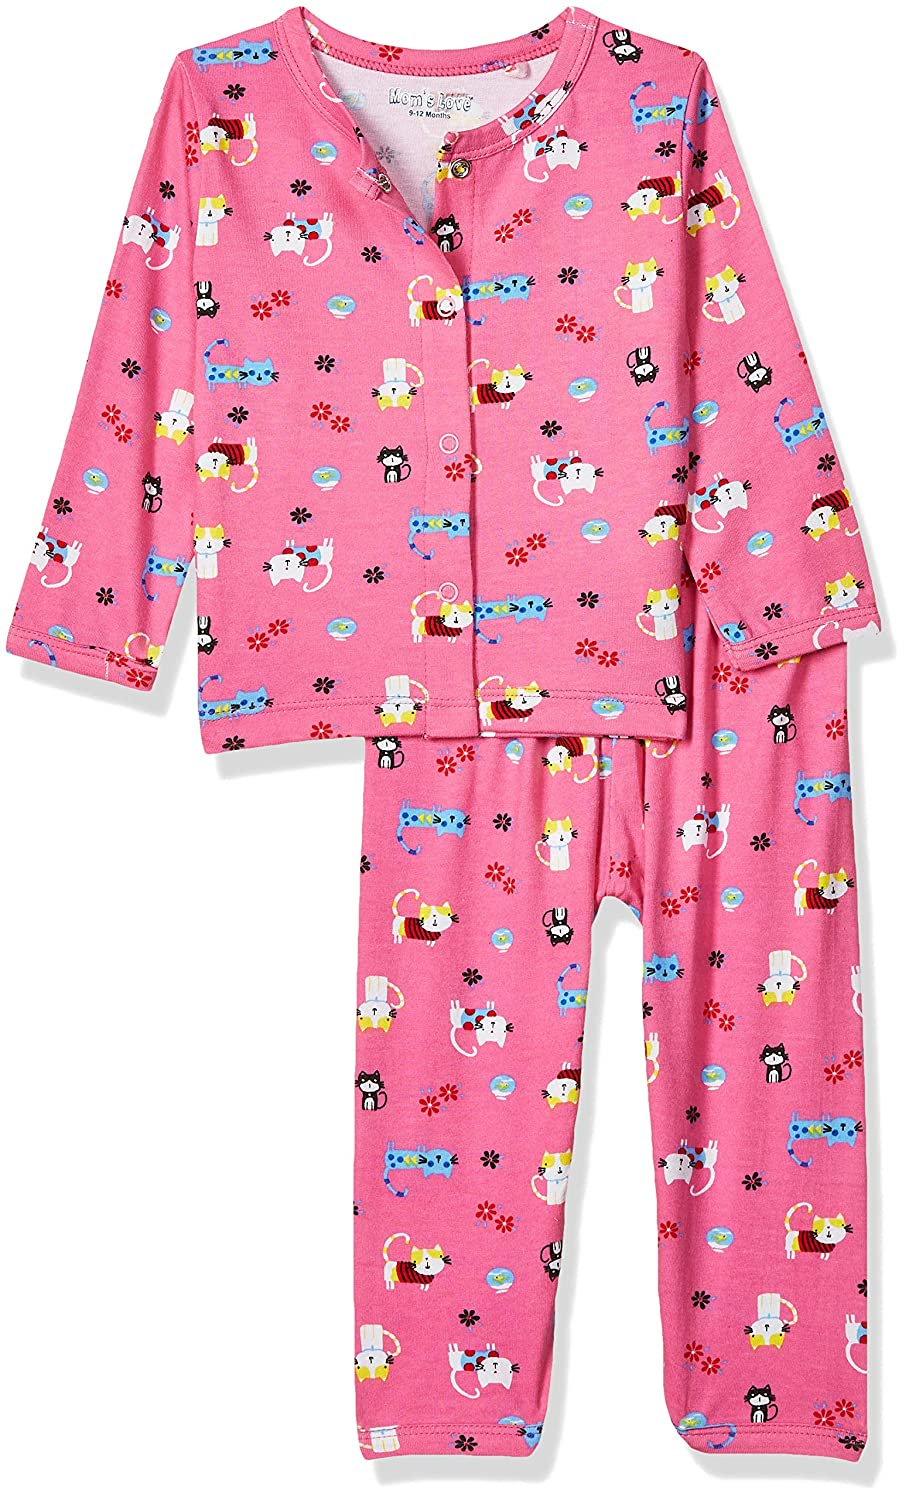 Mom's Love Baby Girl's Cotton Clothing Set